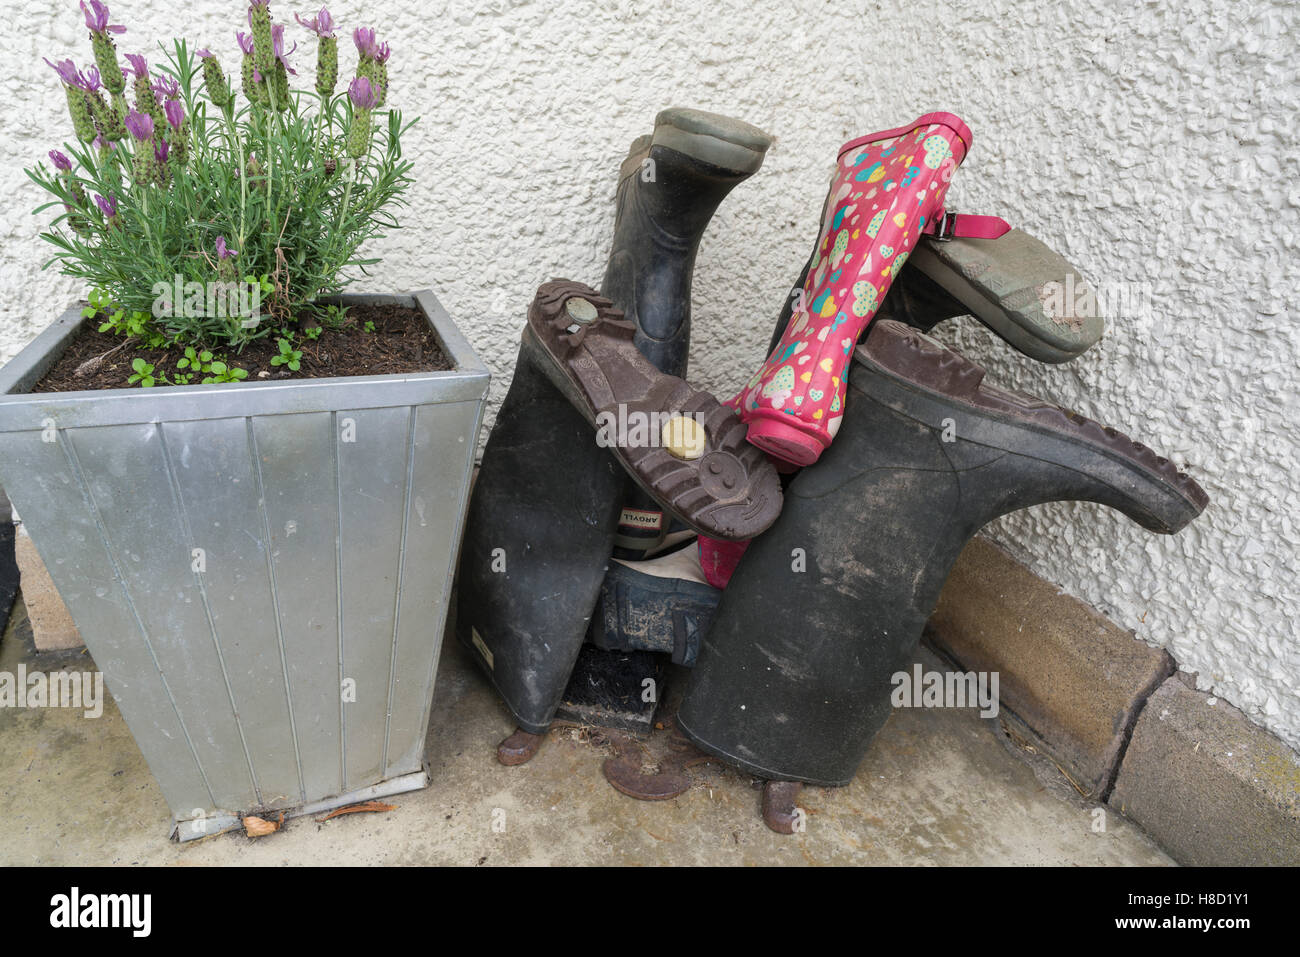 Welly-boots left upside down to keep dry, outside a house front door, with mud on them Stock Photo